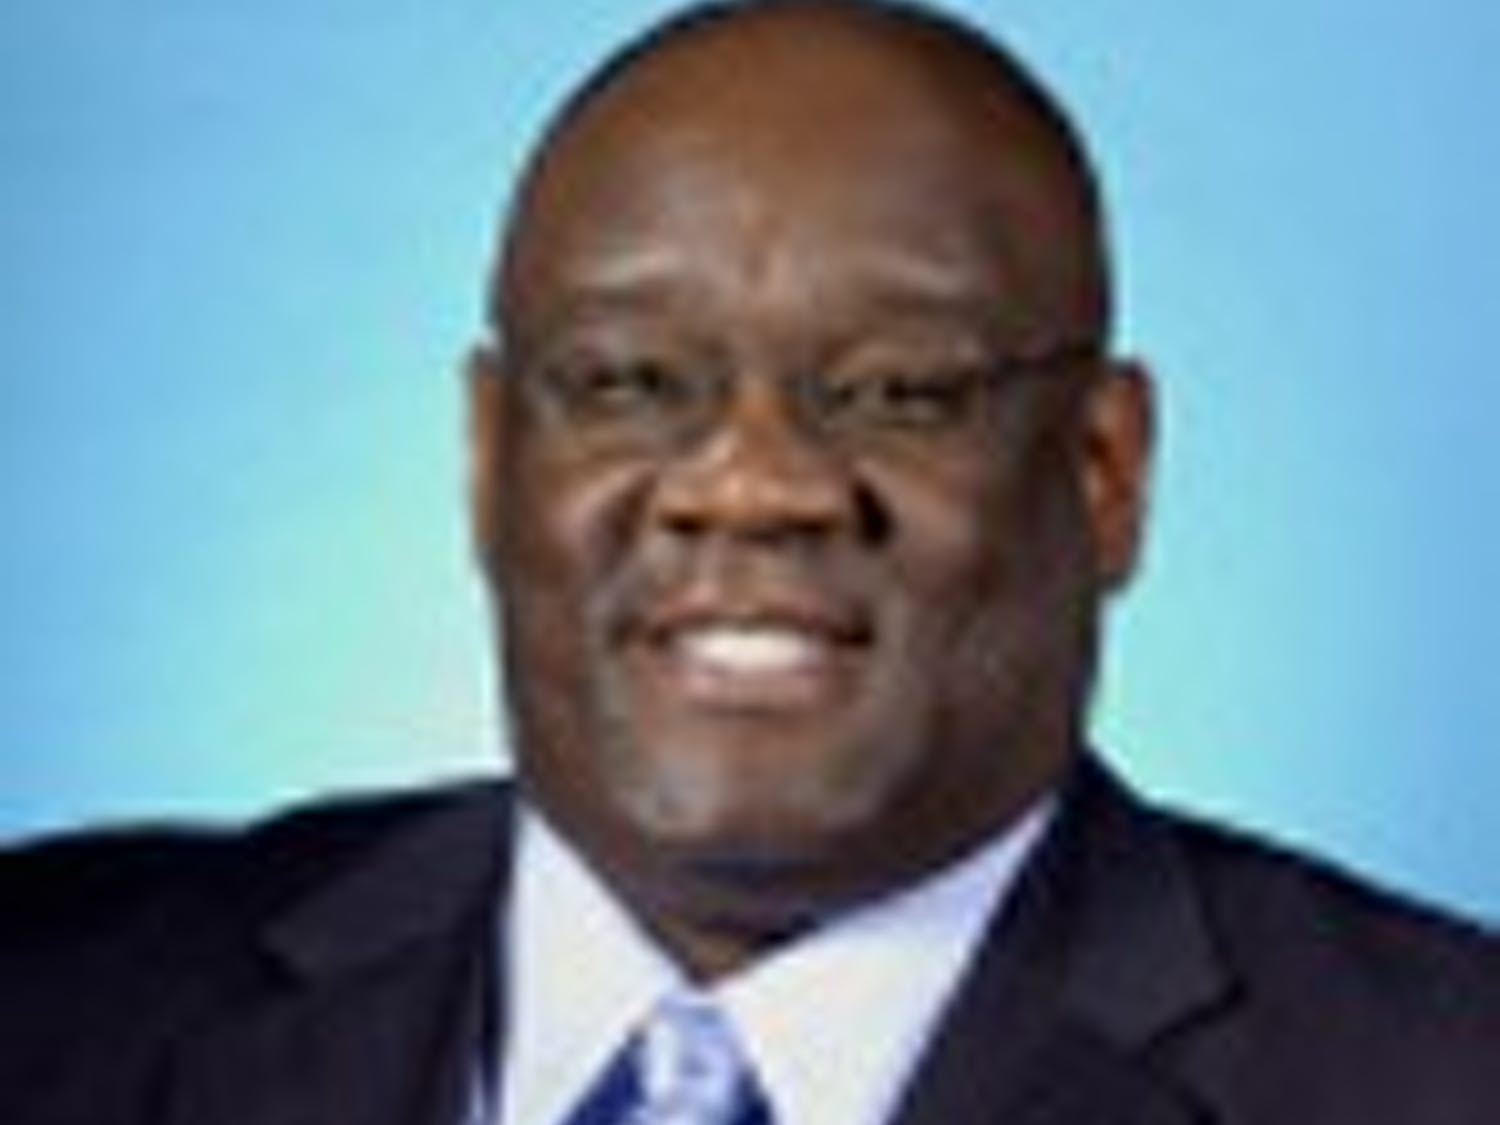 John Blake resigned from his recruiting coordinator position Sept. 5.